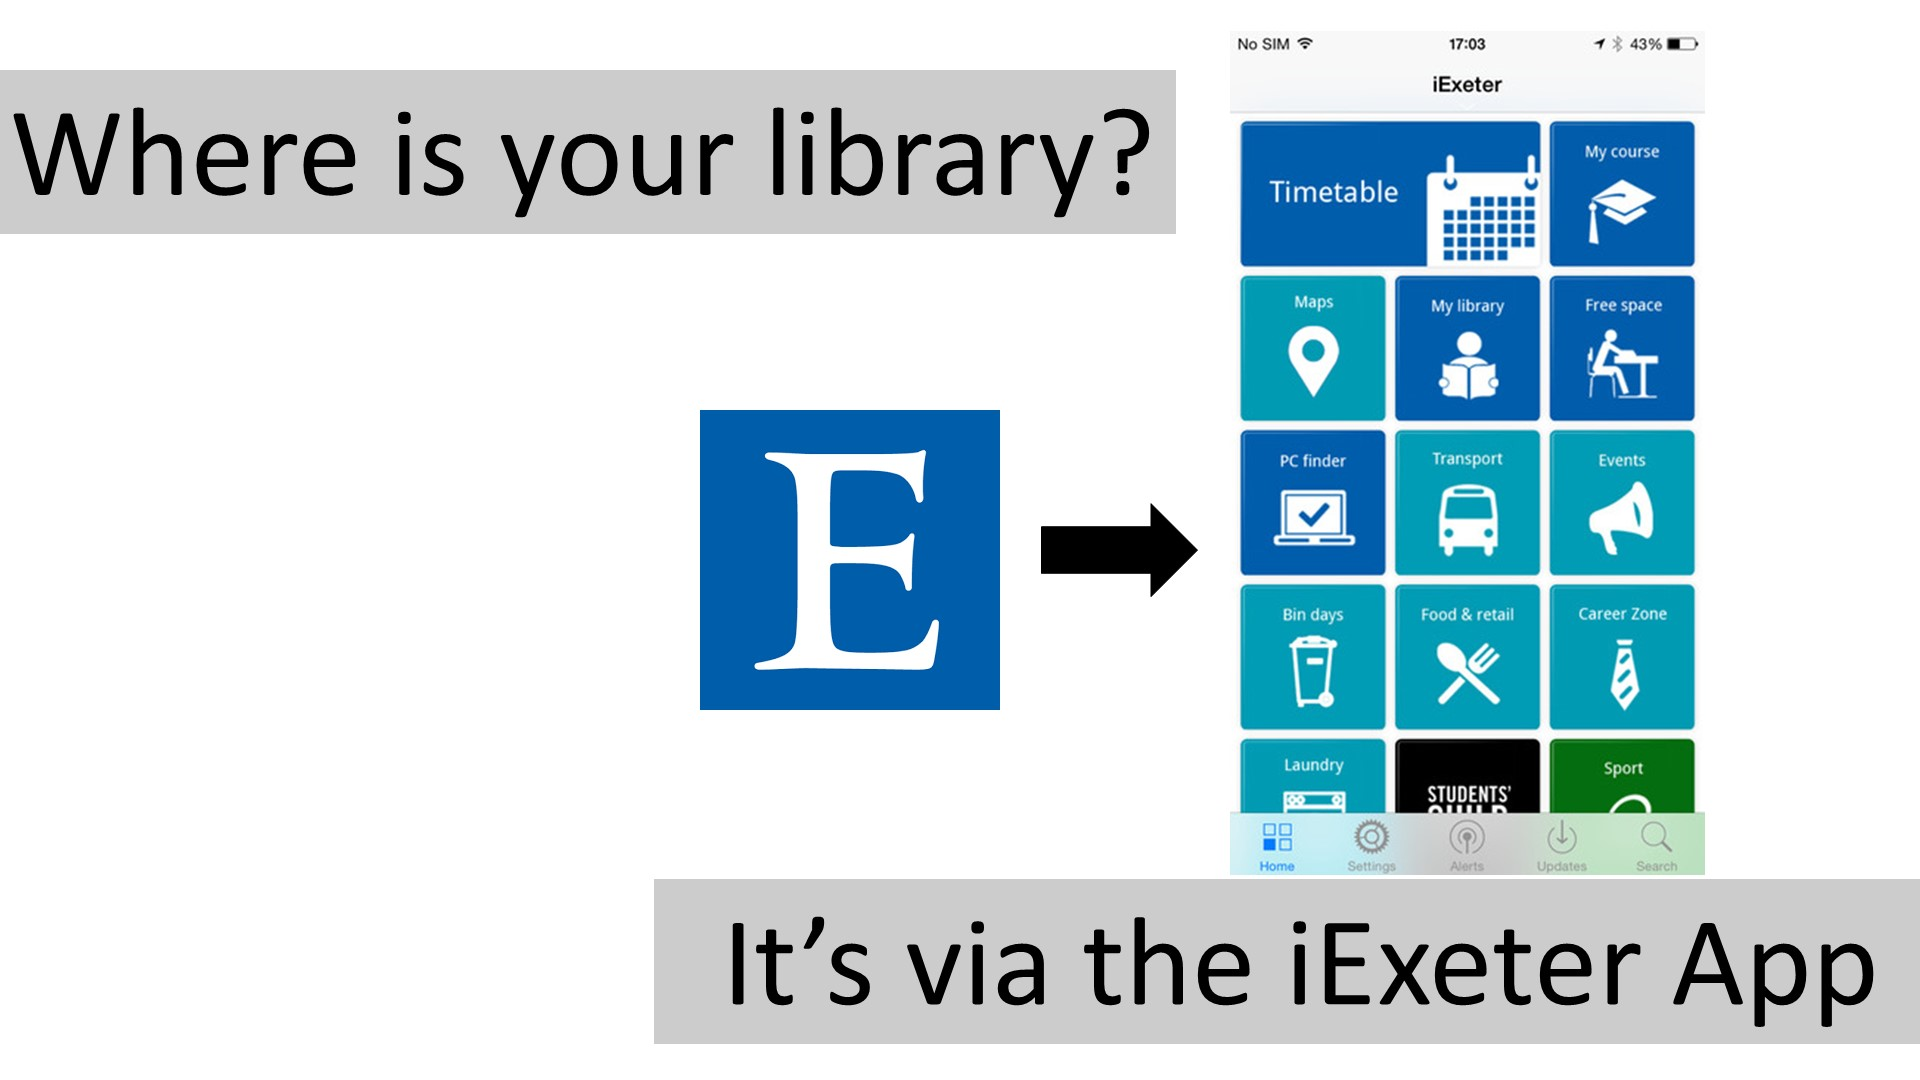 It;s via the iExeter App